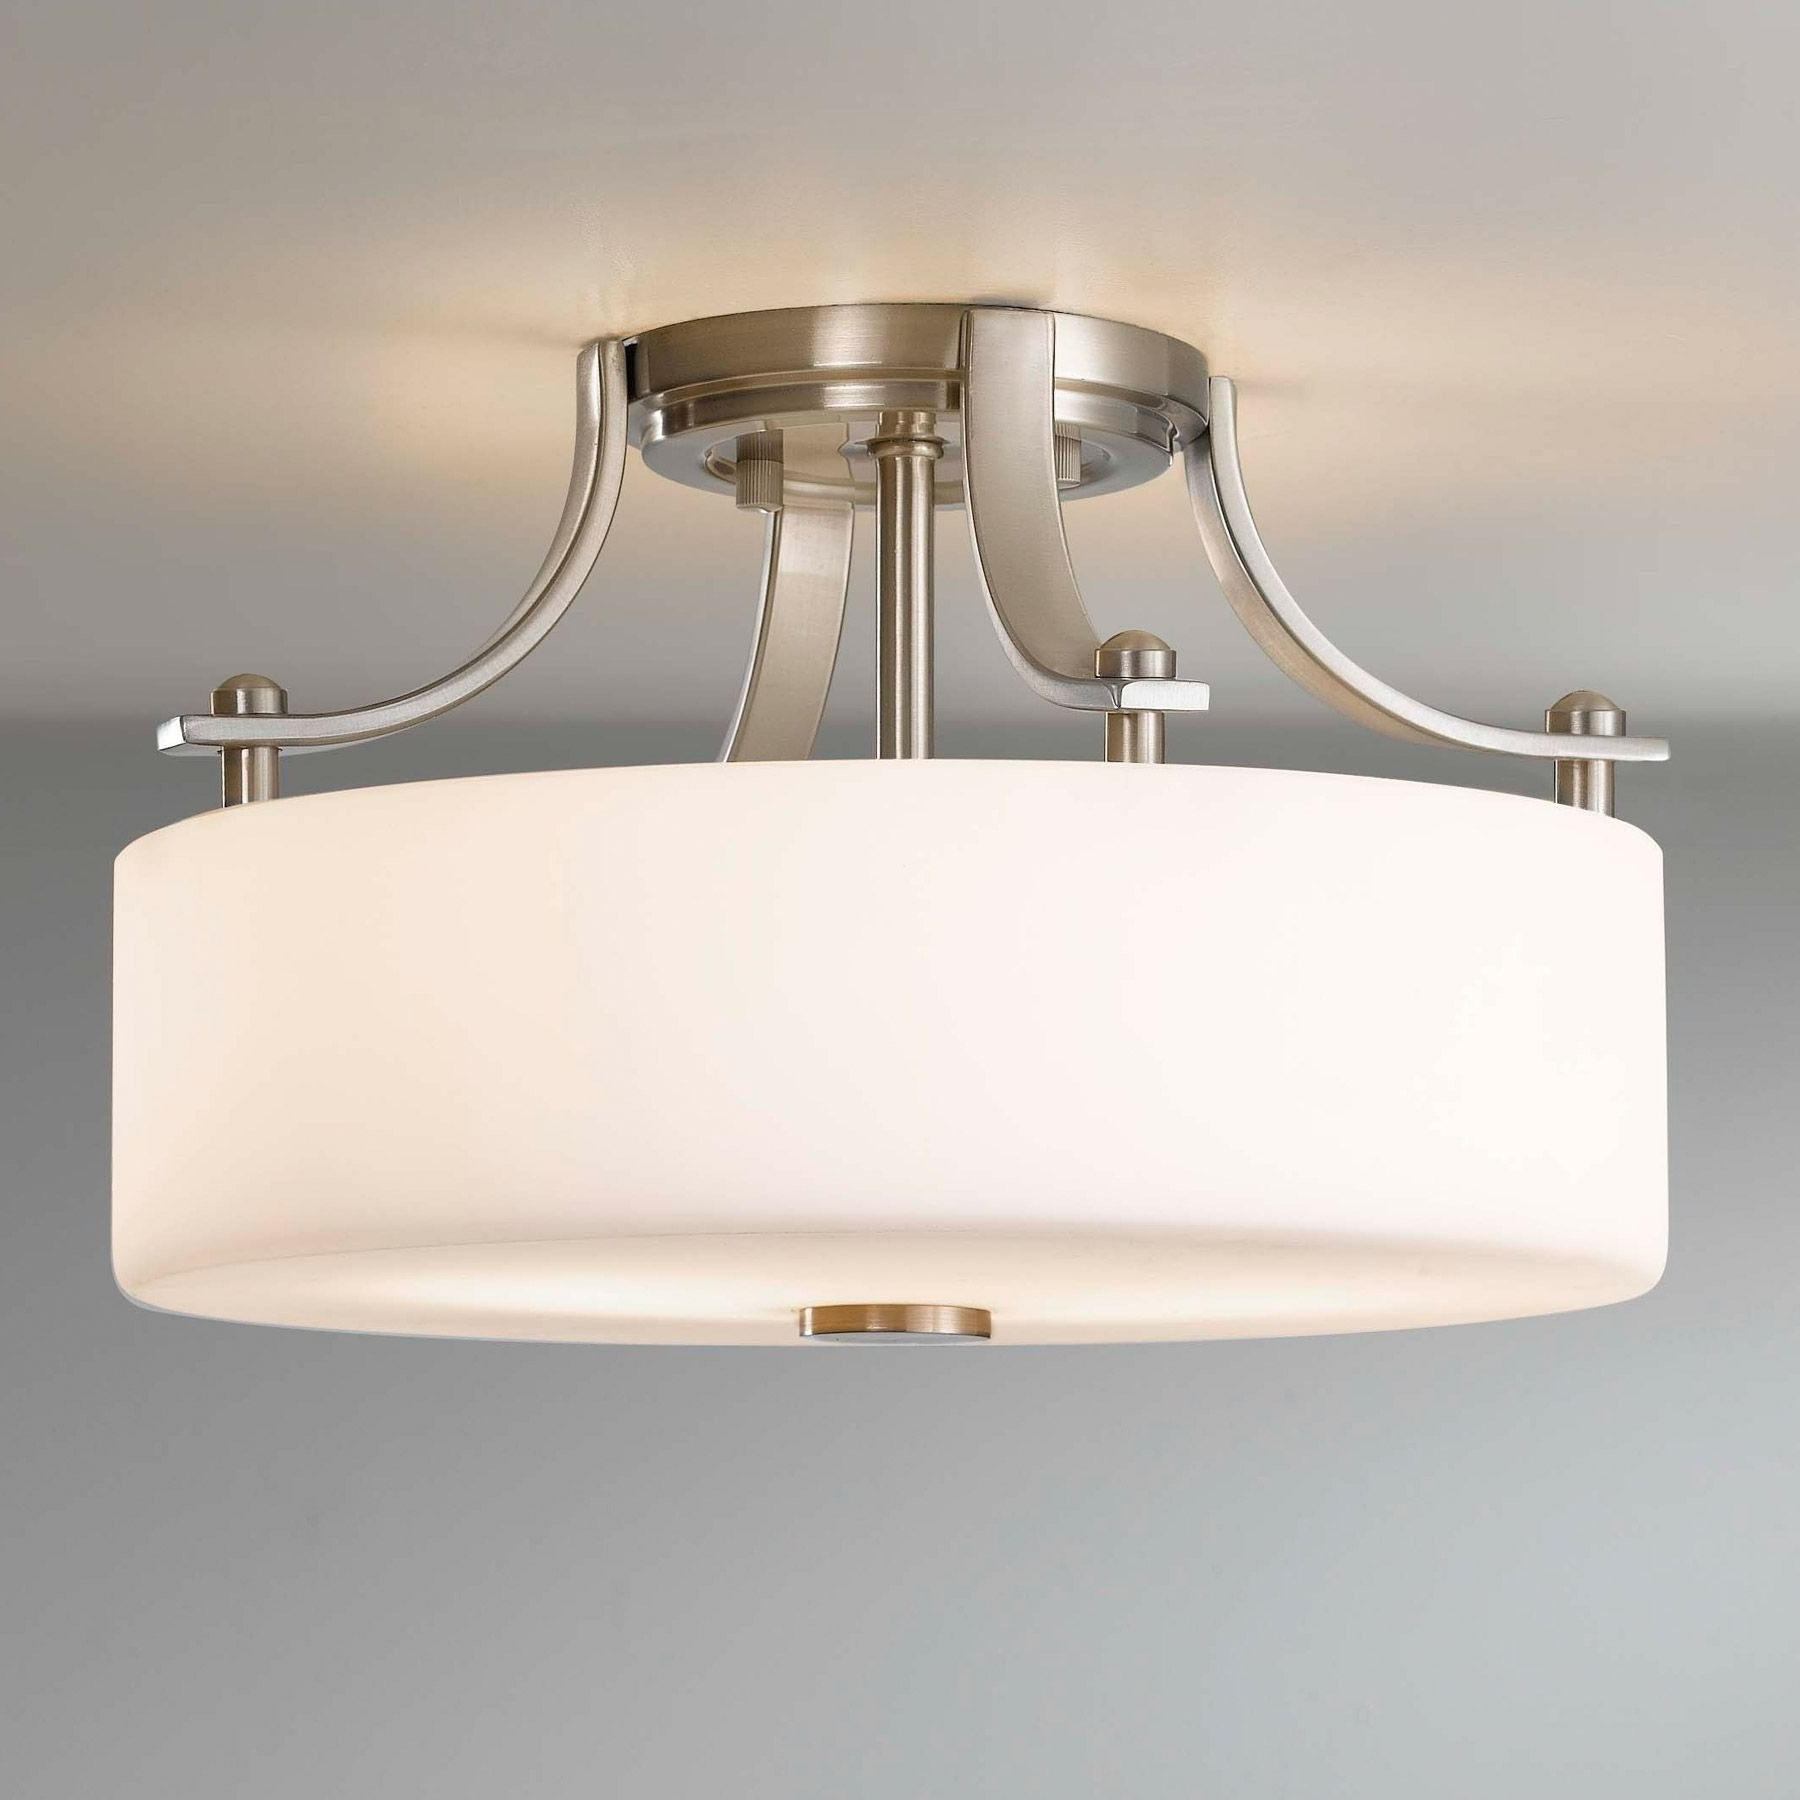 Most Current Chandelier Bathroom Ceiling Lights Intended For Bathroom Ceiling Light Fixture – Inspirational White Flushmount (View 13 of 20)